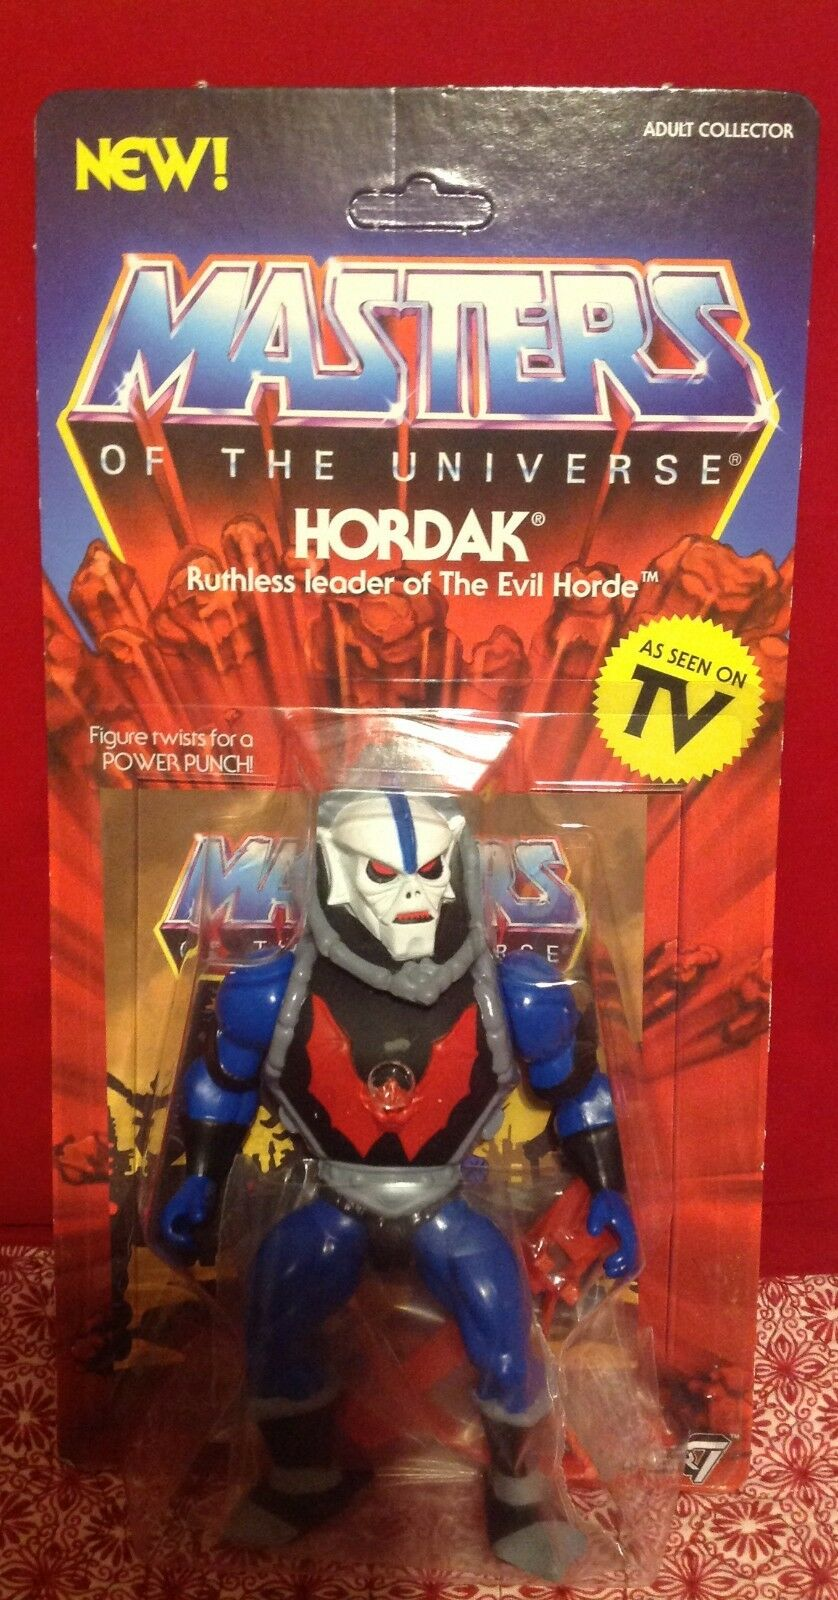 Masters of the Universe MOTU Adult Collector As Seen on TV Hordak Action Figure